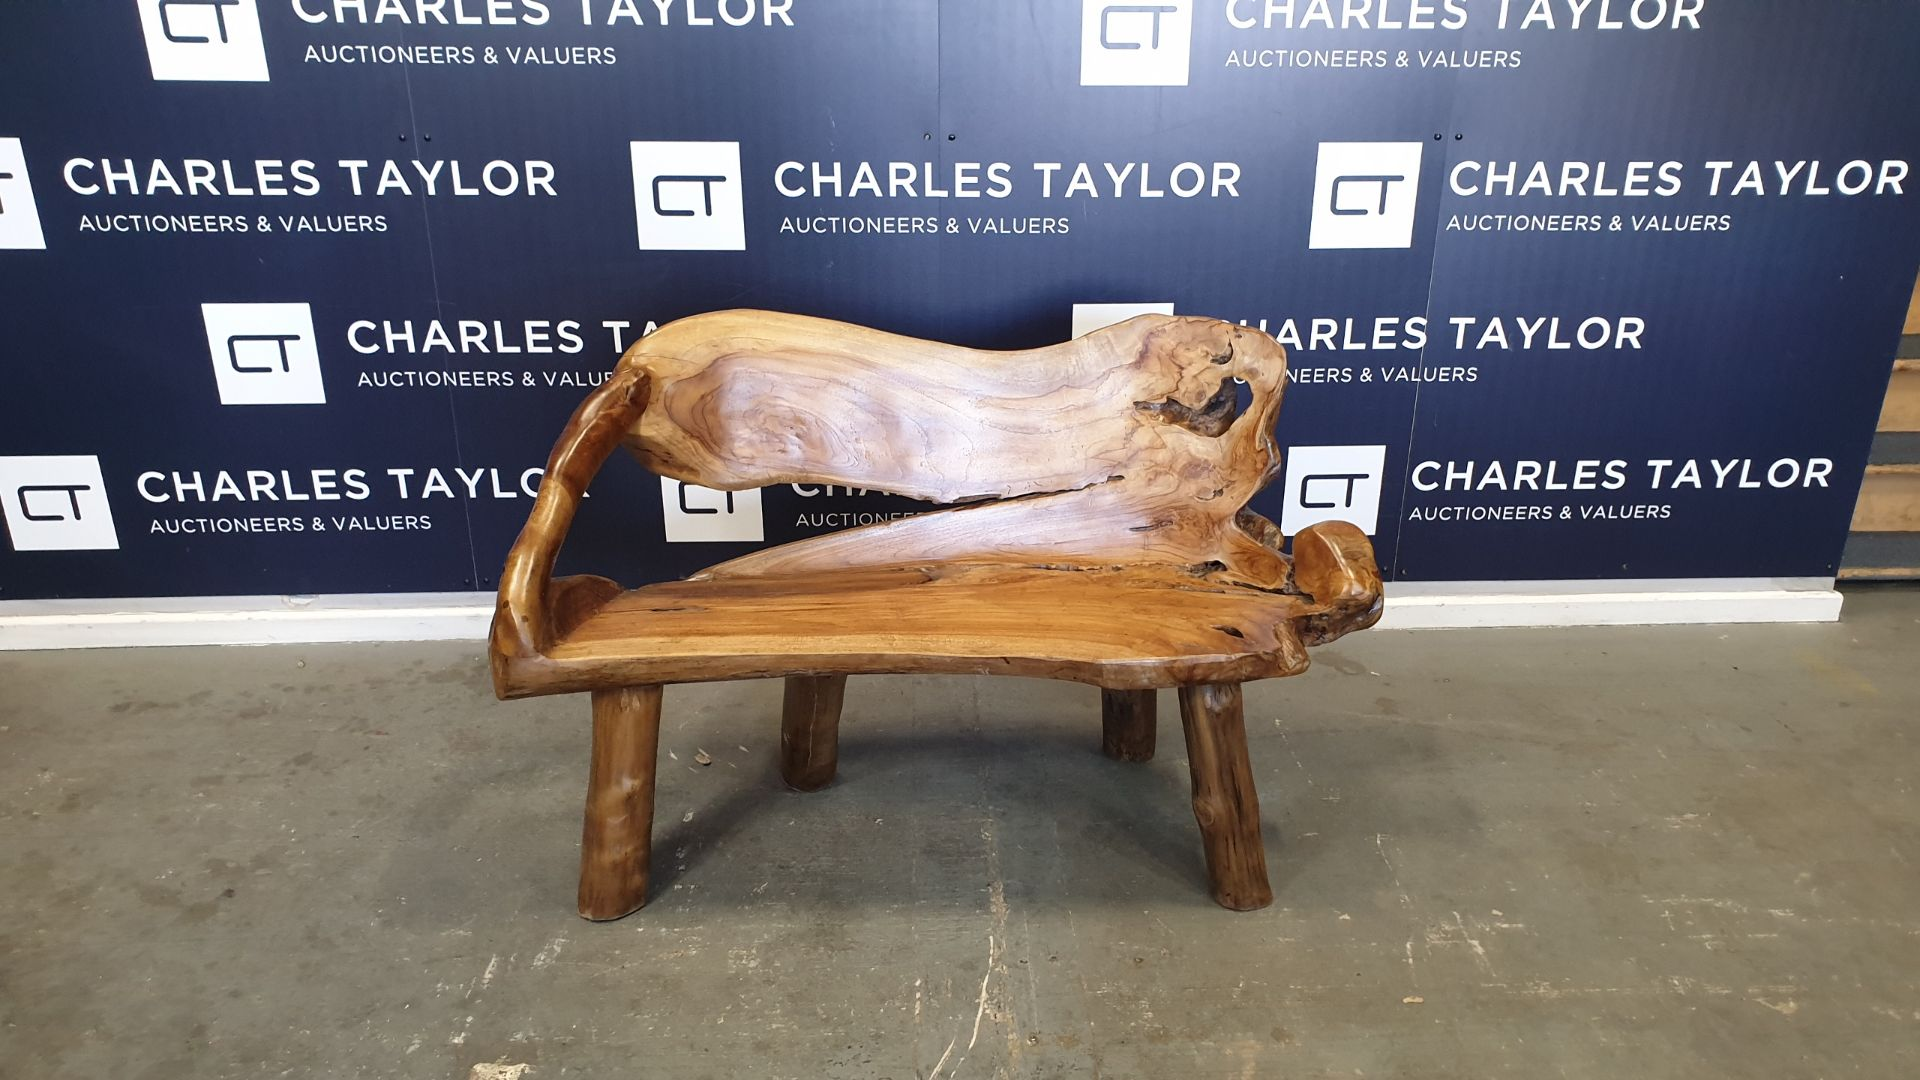 Lot 26 - BRAND NEW SOLID TEAK ROOT WOODEN 2 SEATER BENCH 50 X 90 X 120cm RRP £400